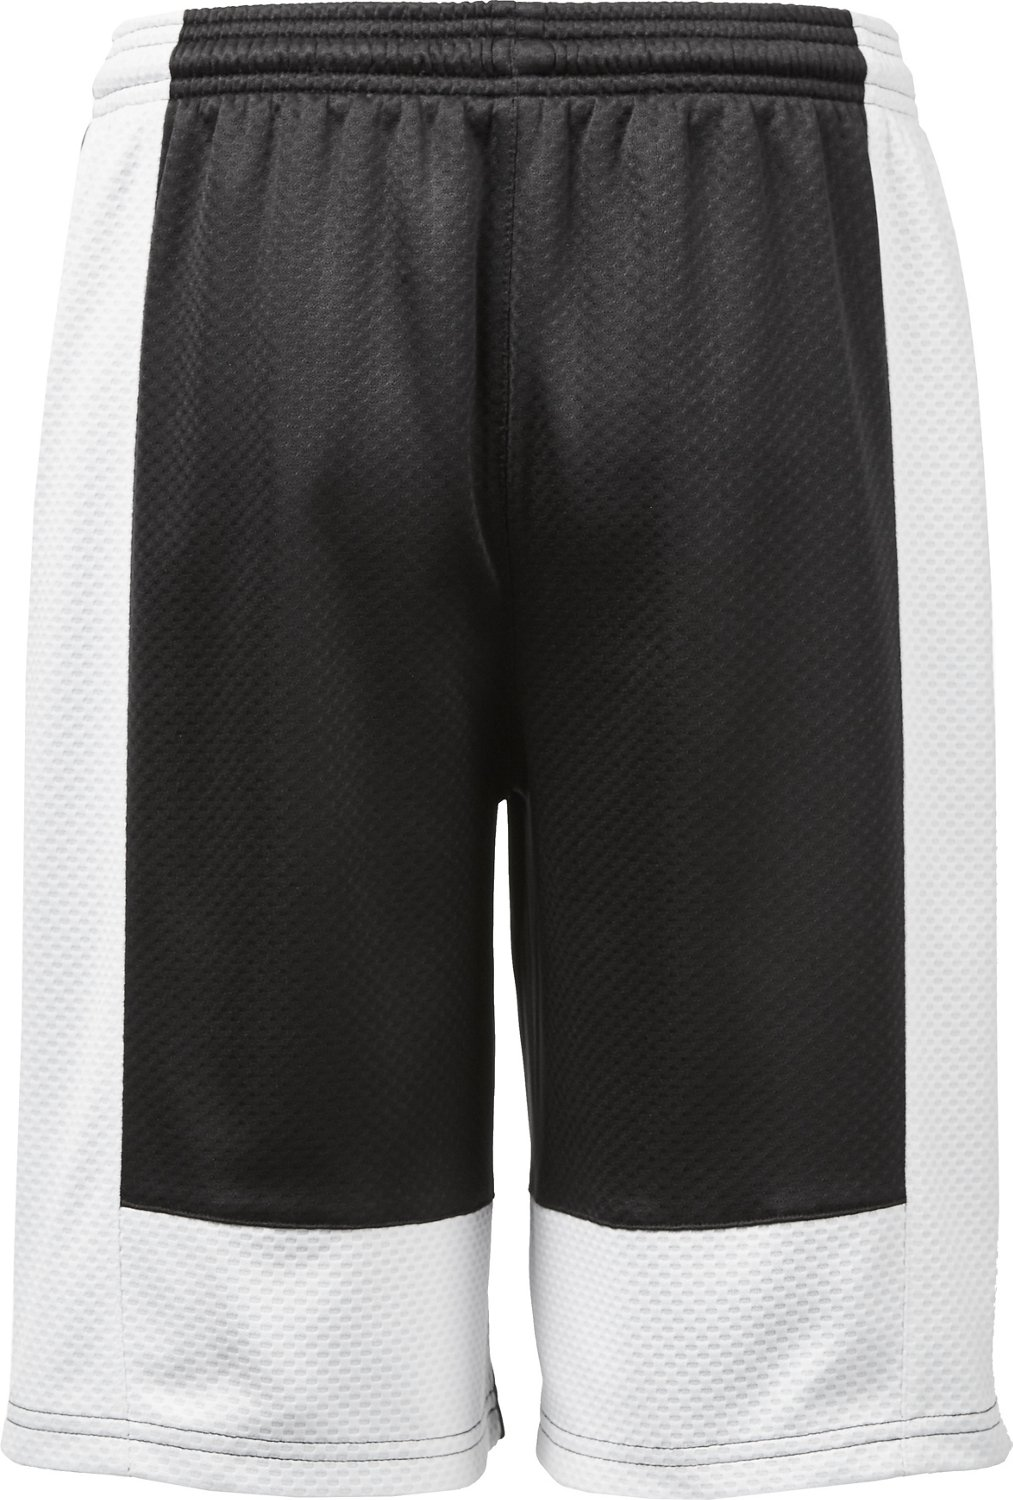 BCG Boys' Basketball Shorts - view number 1